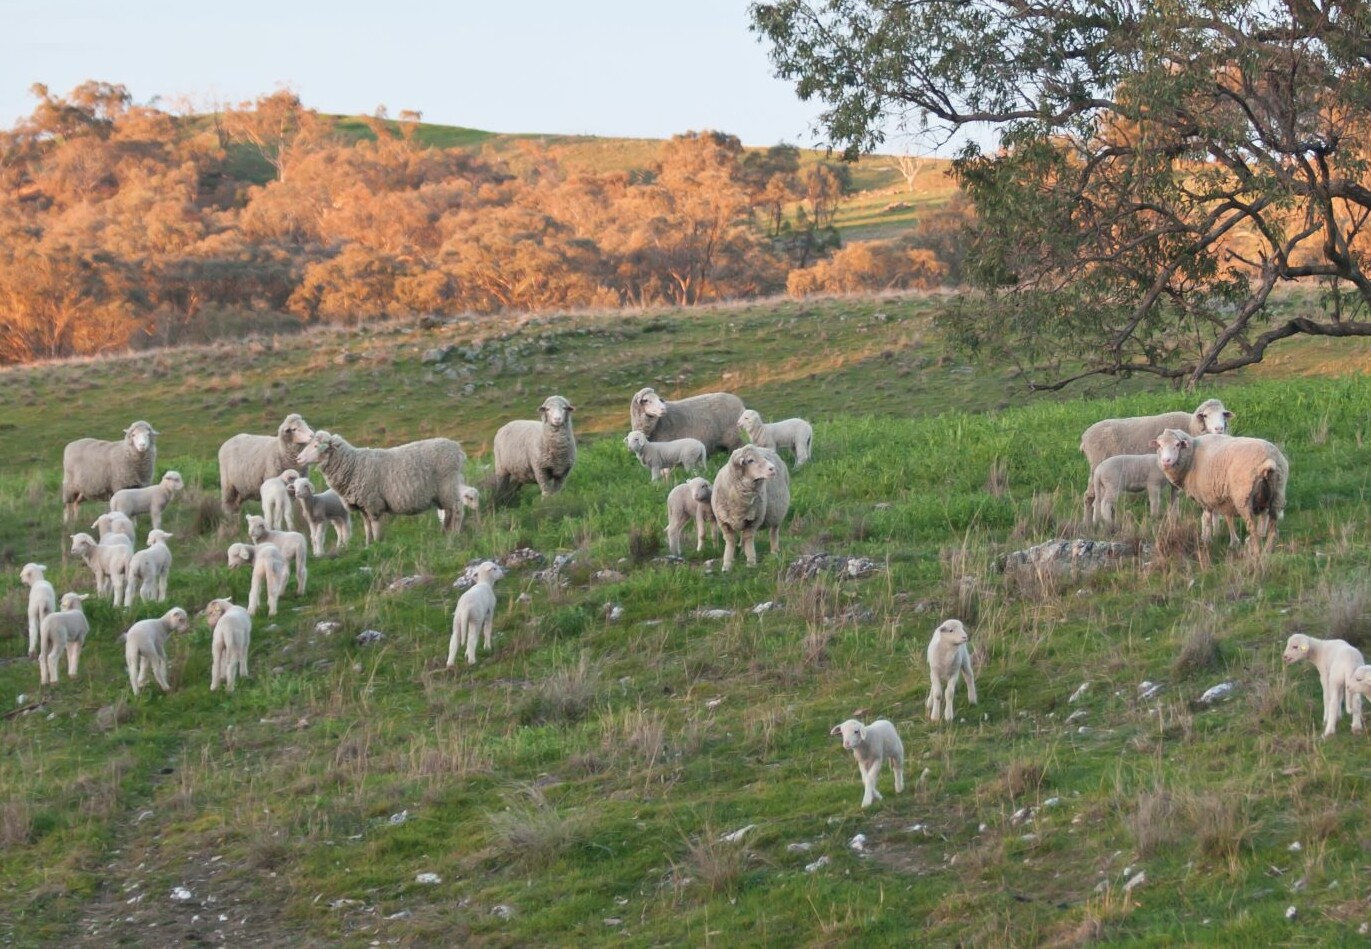 Sheep with lambs in Australia